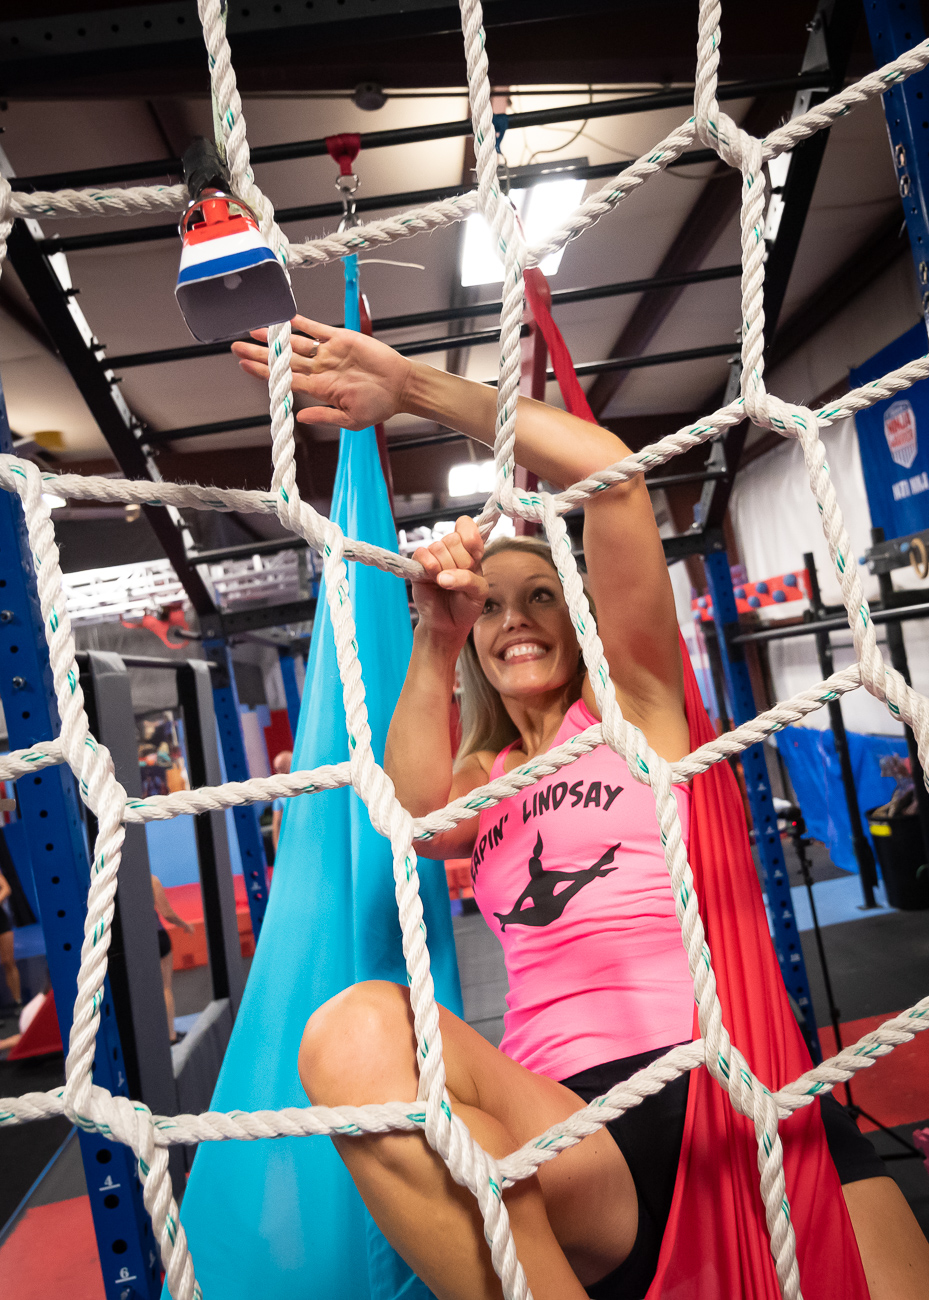 Lindsay Partenio successfully makes it to the climbing net and slaps the victory bell. She appeared on season 11 of American Ninja Warrior. / Image: Phil Armstrong, Cincinnati Refined // Published: 9.18.19